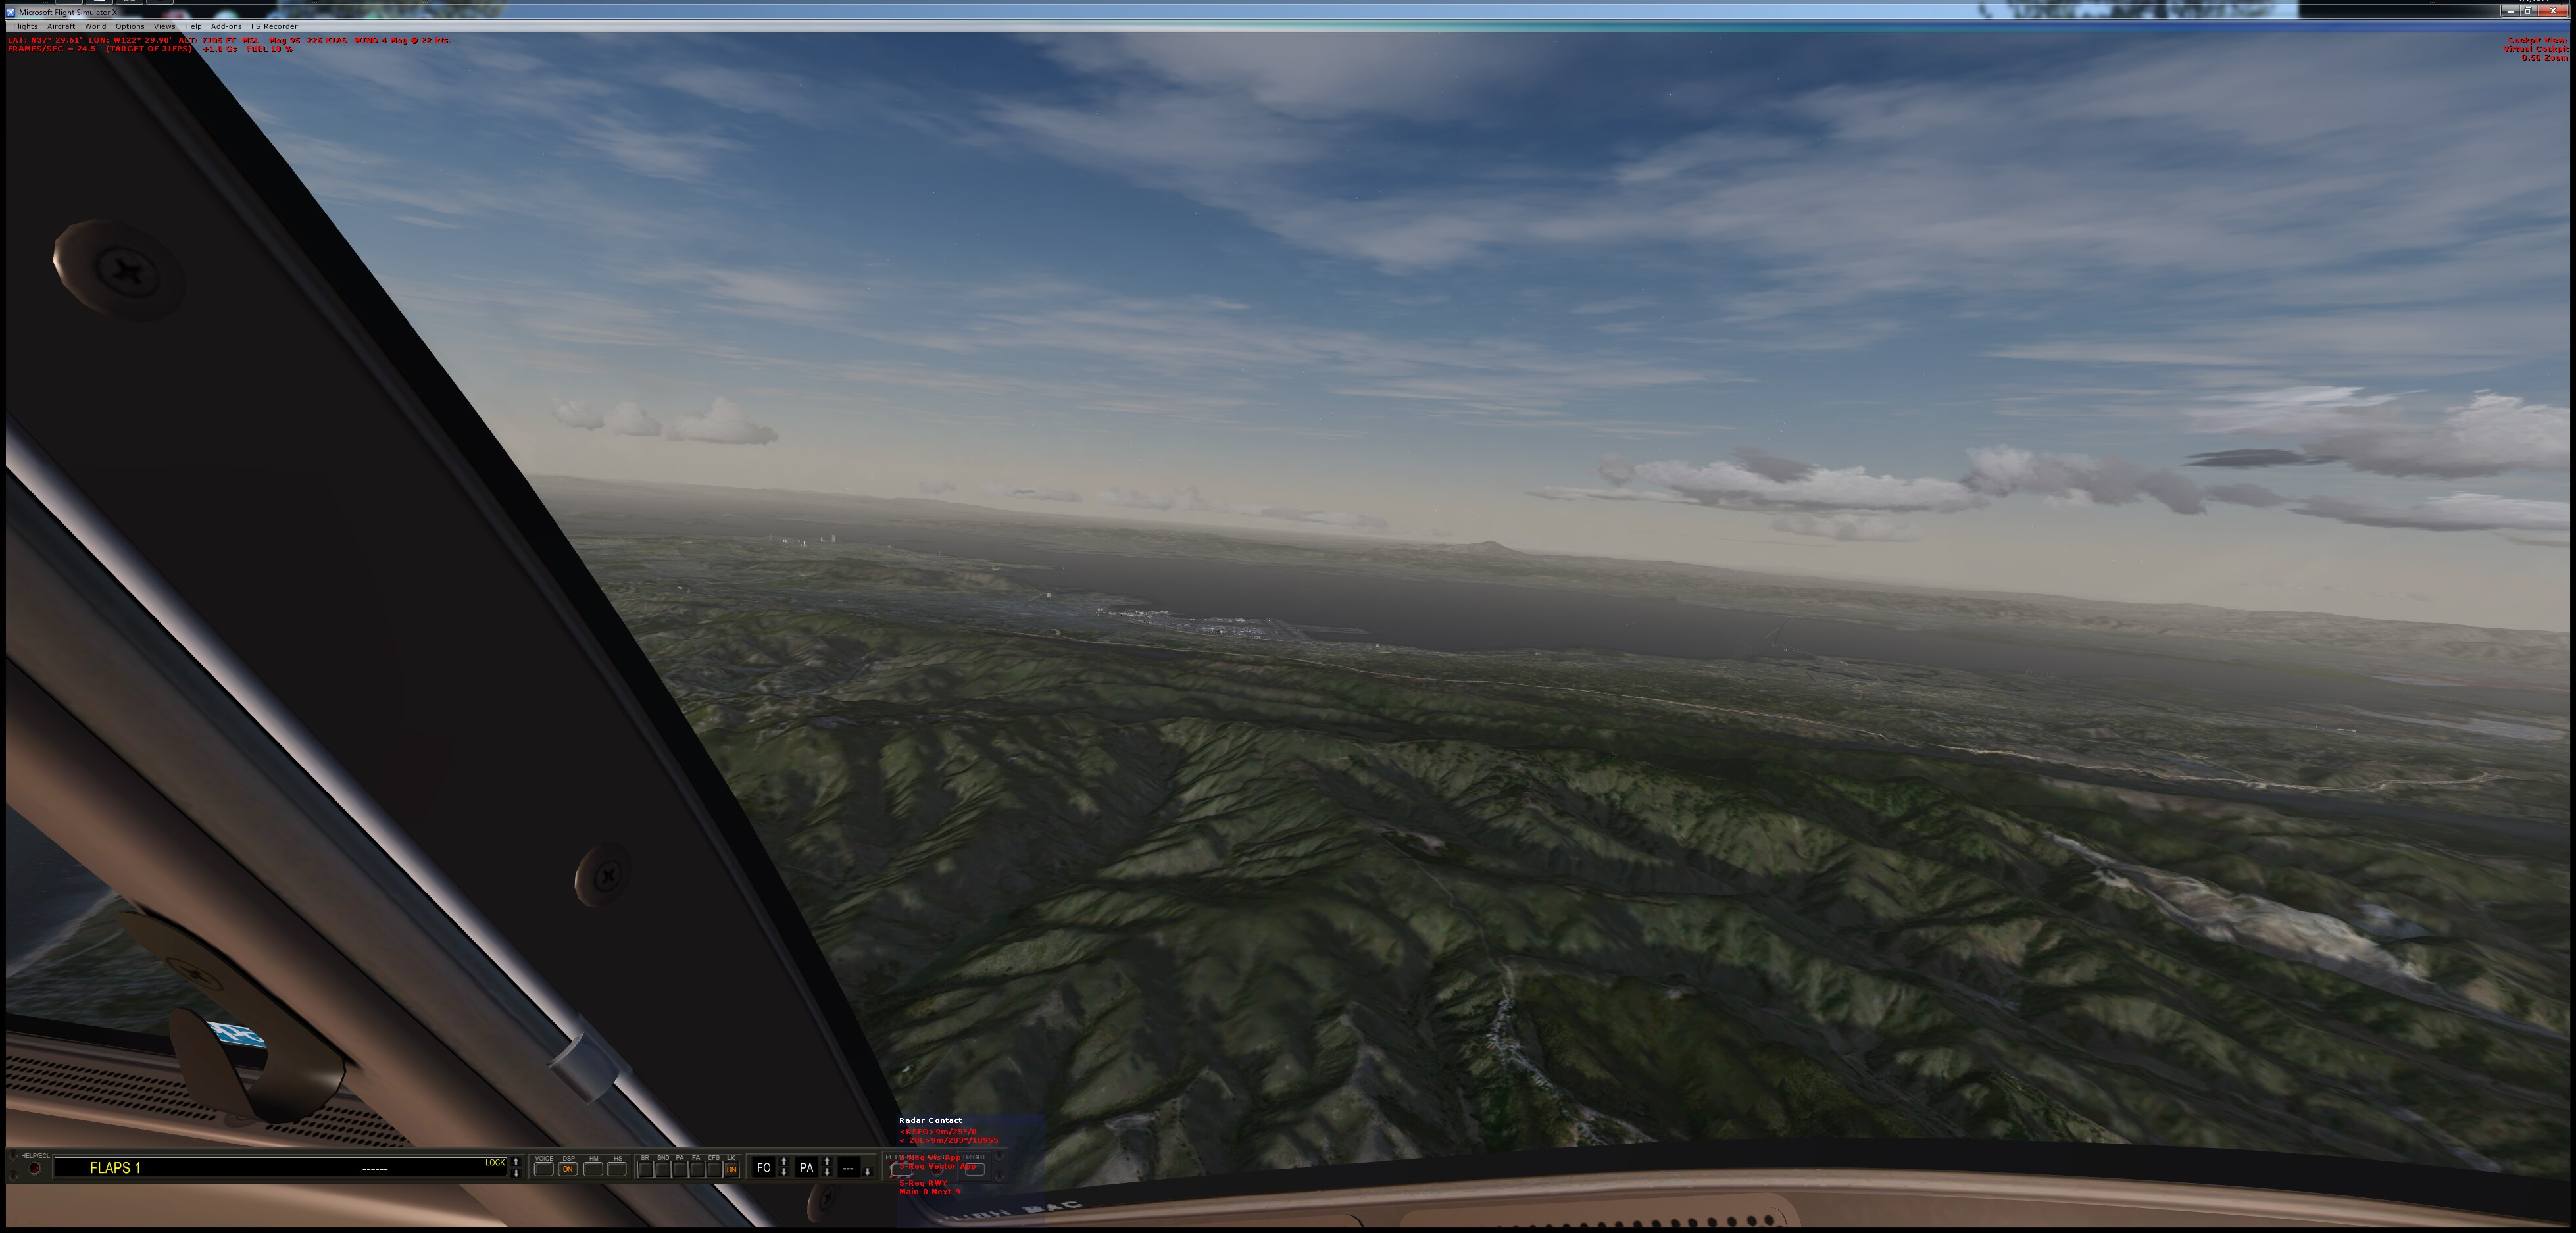 ScreenshotsRJTT-KSFO-23.jpg